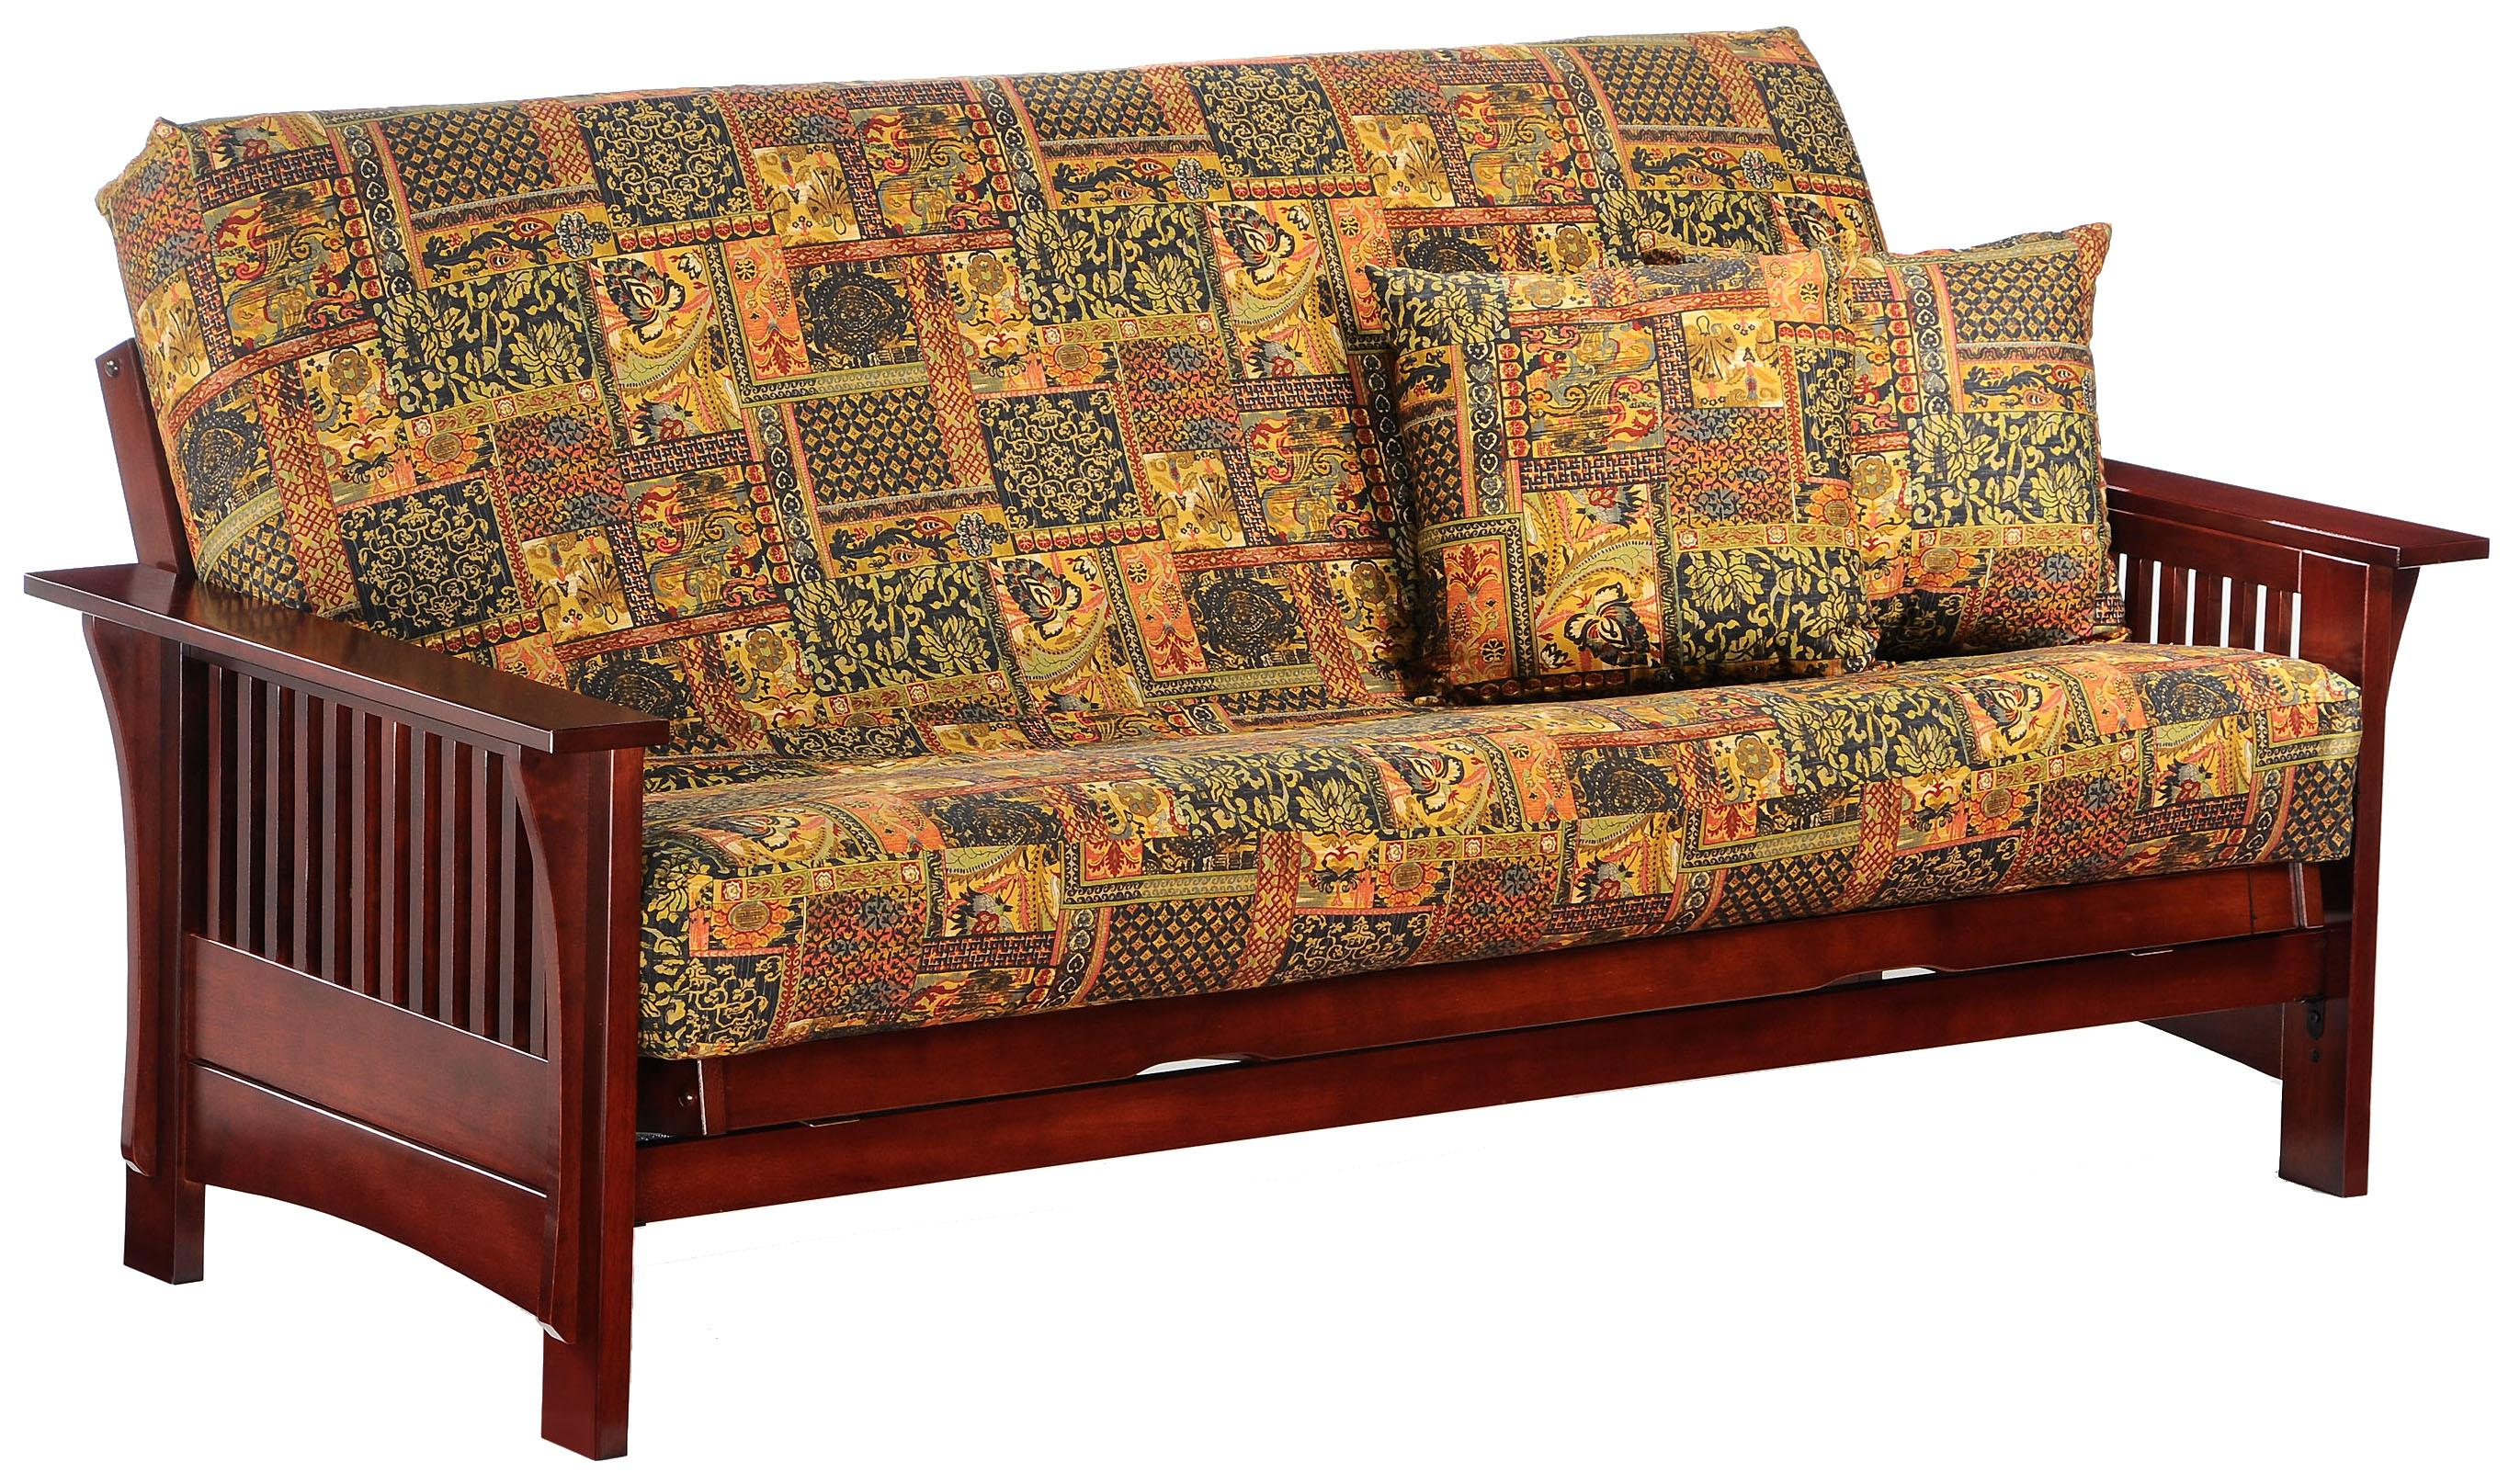 Autumn Rosewood Chair Size Futon by Night & Day Furniture at Godby Home Furnishings